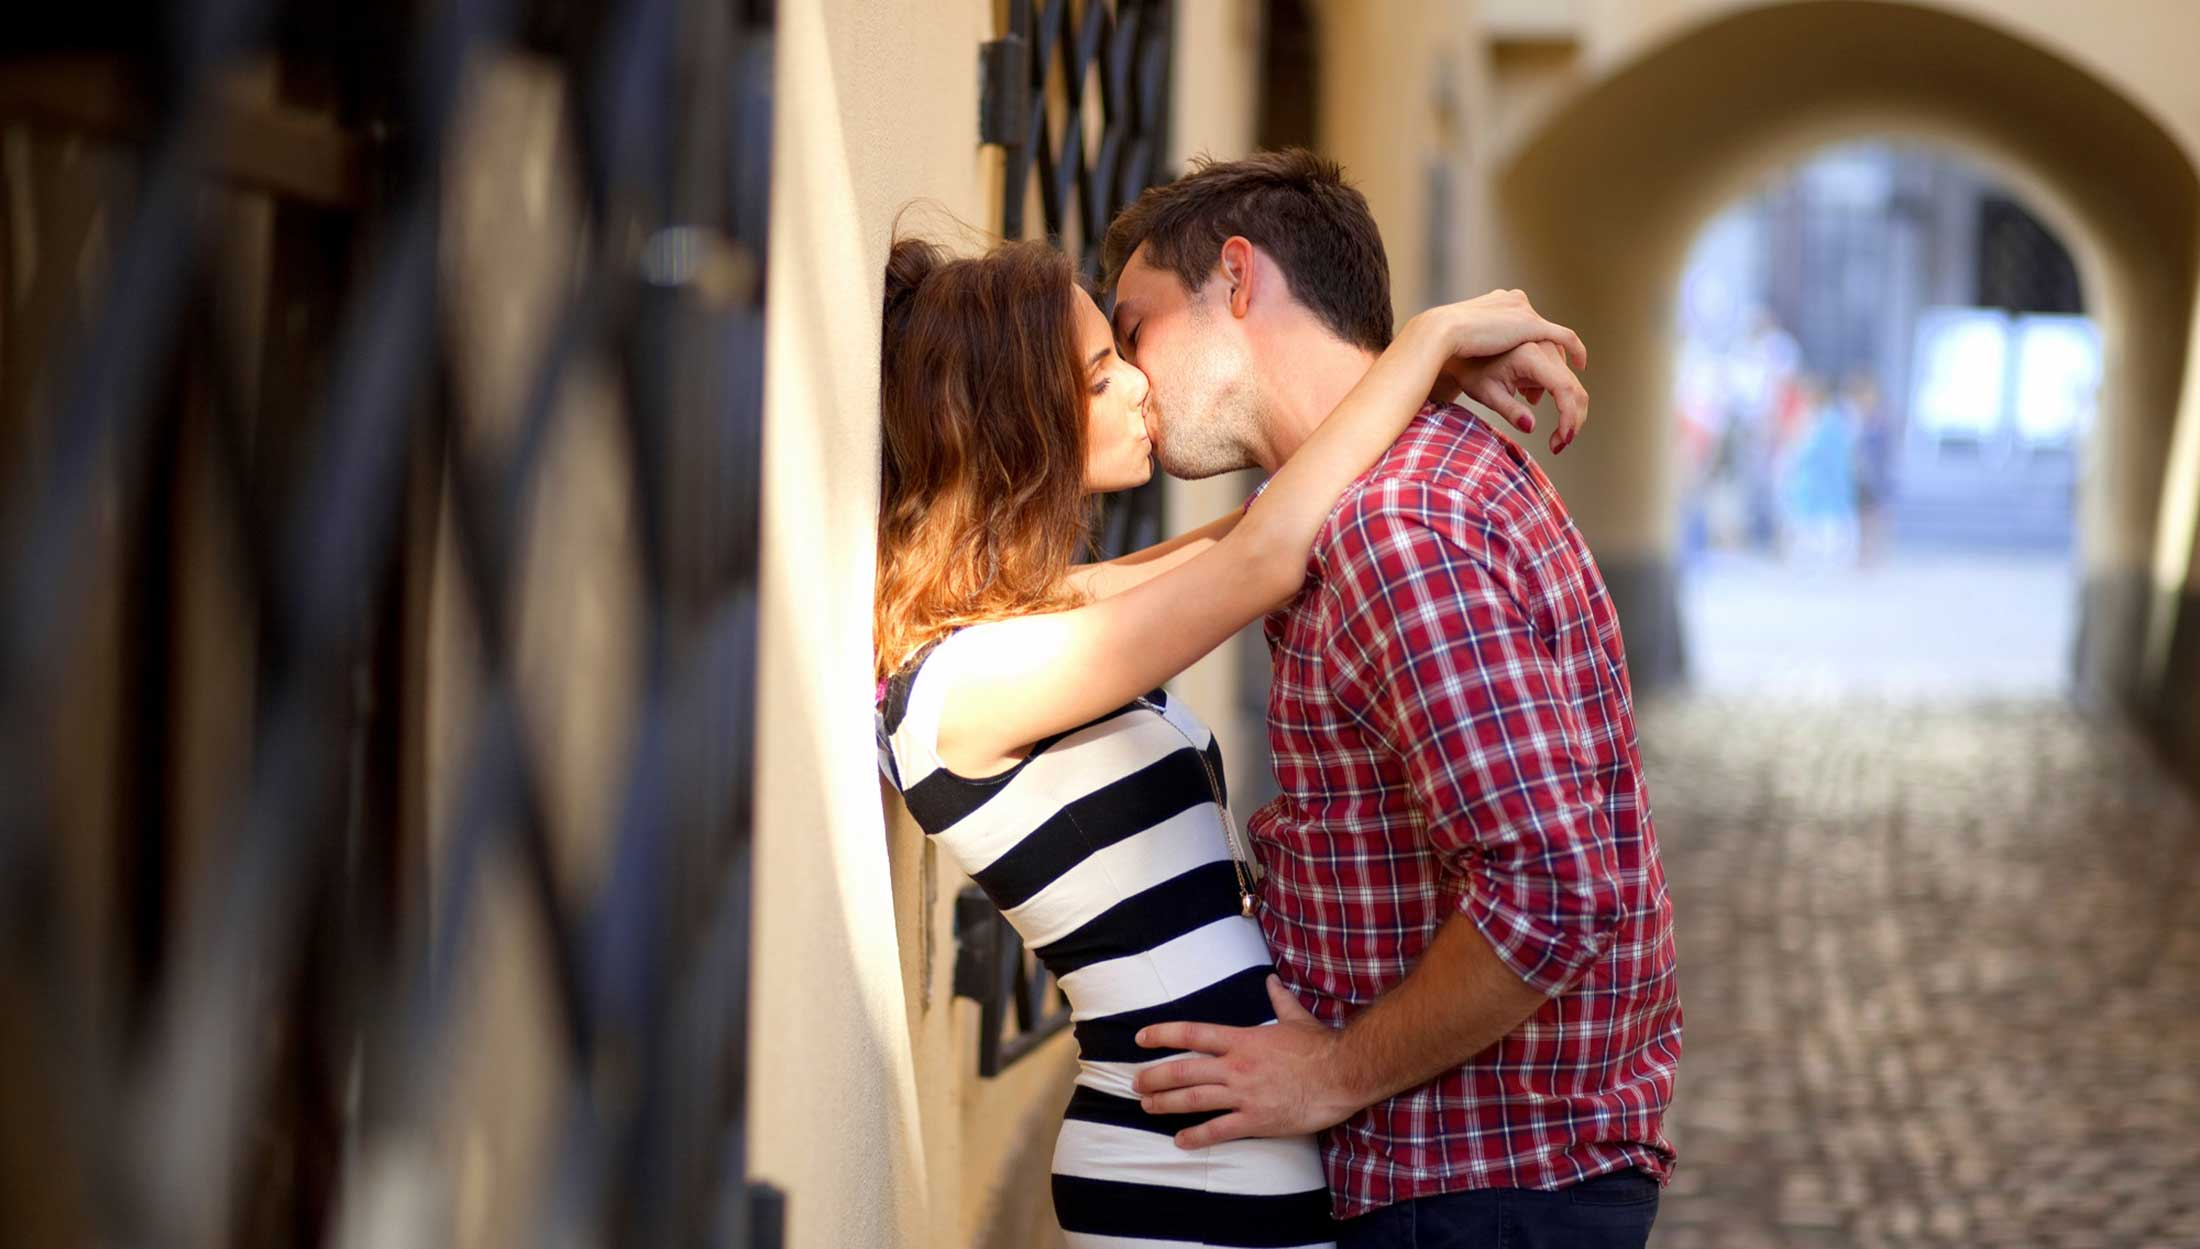 Should You Cheat to Bring Back Excitement in Your Relationship?